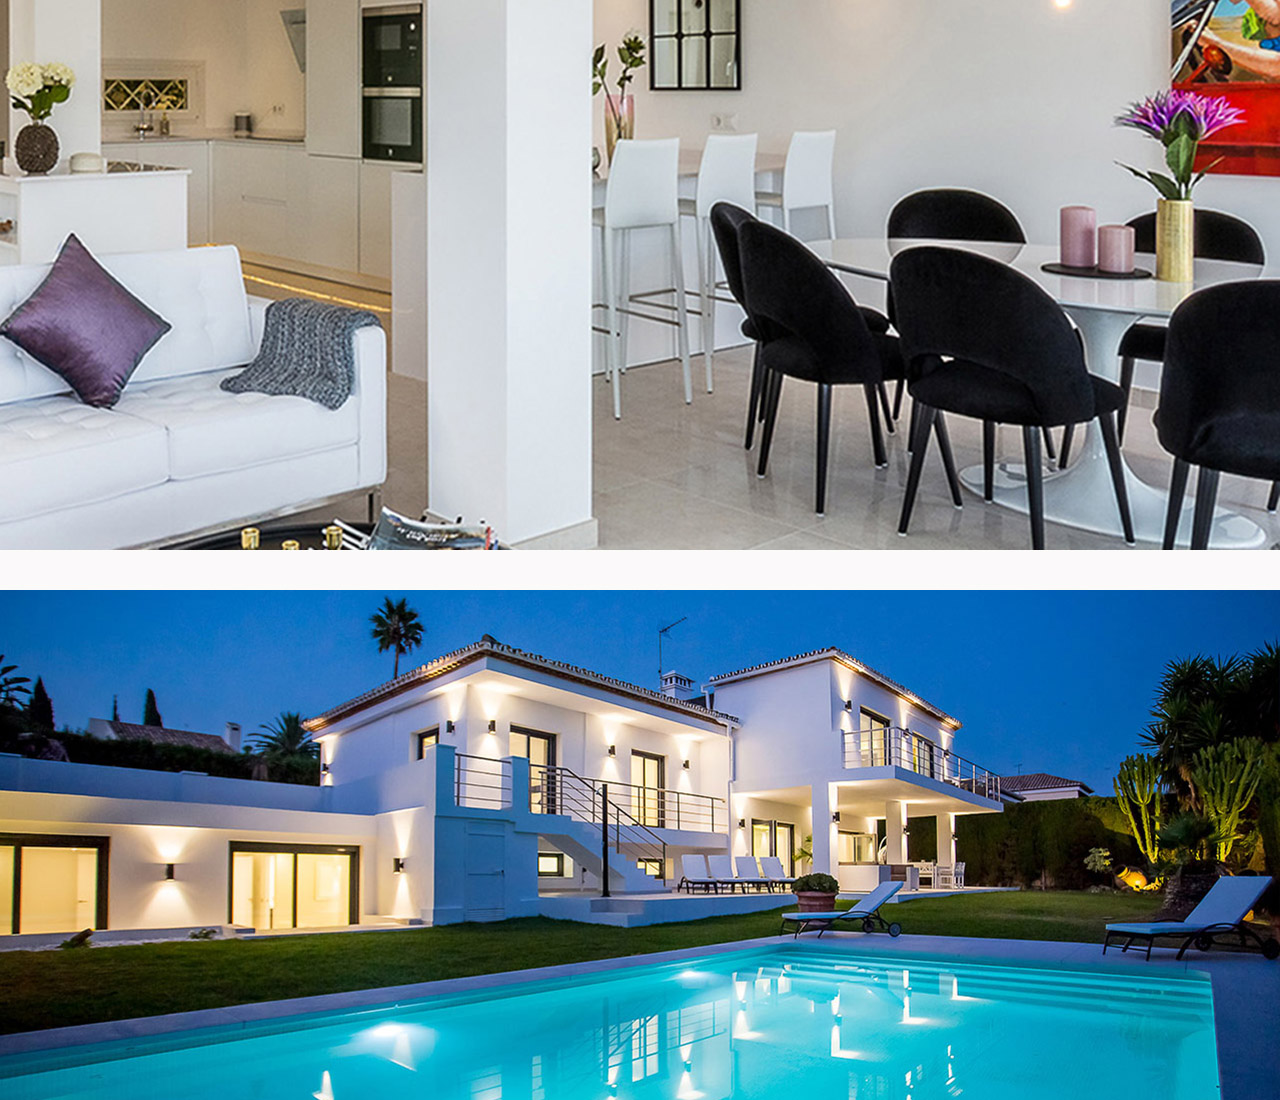 Reforms and designs by ProMas Building on the Costa del Sol